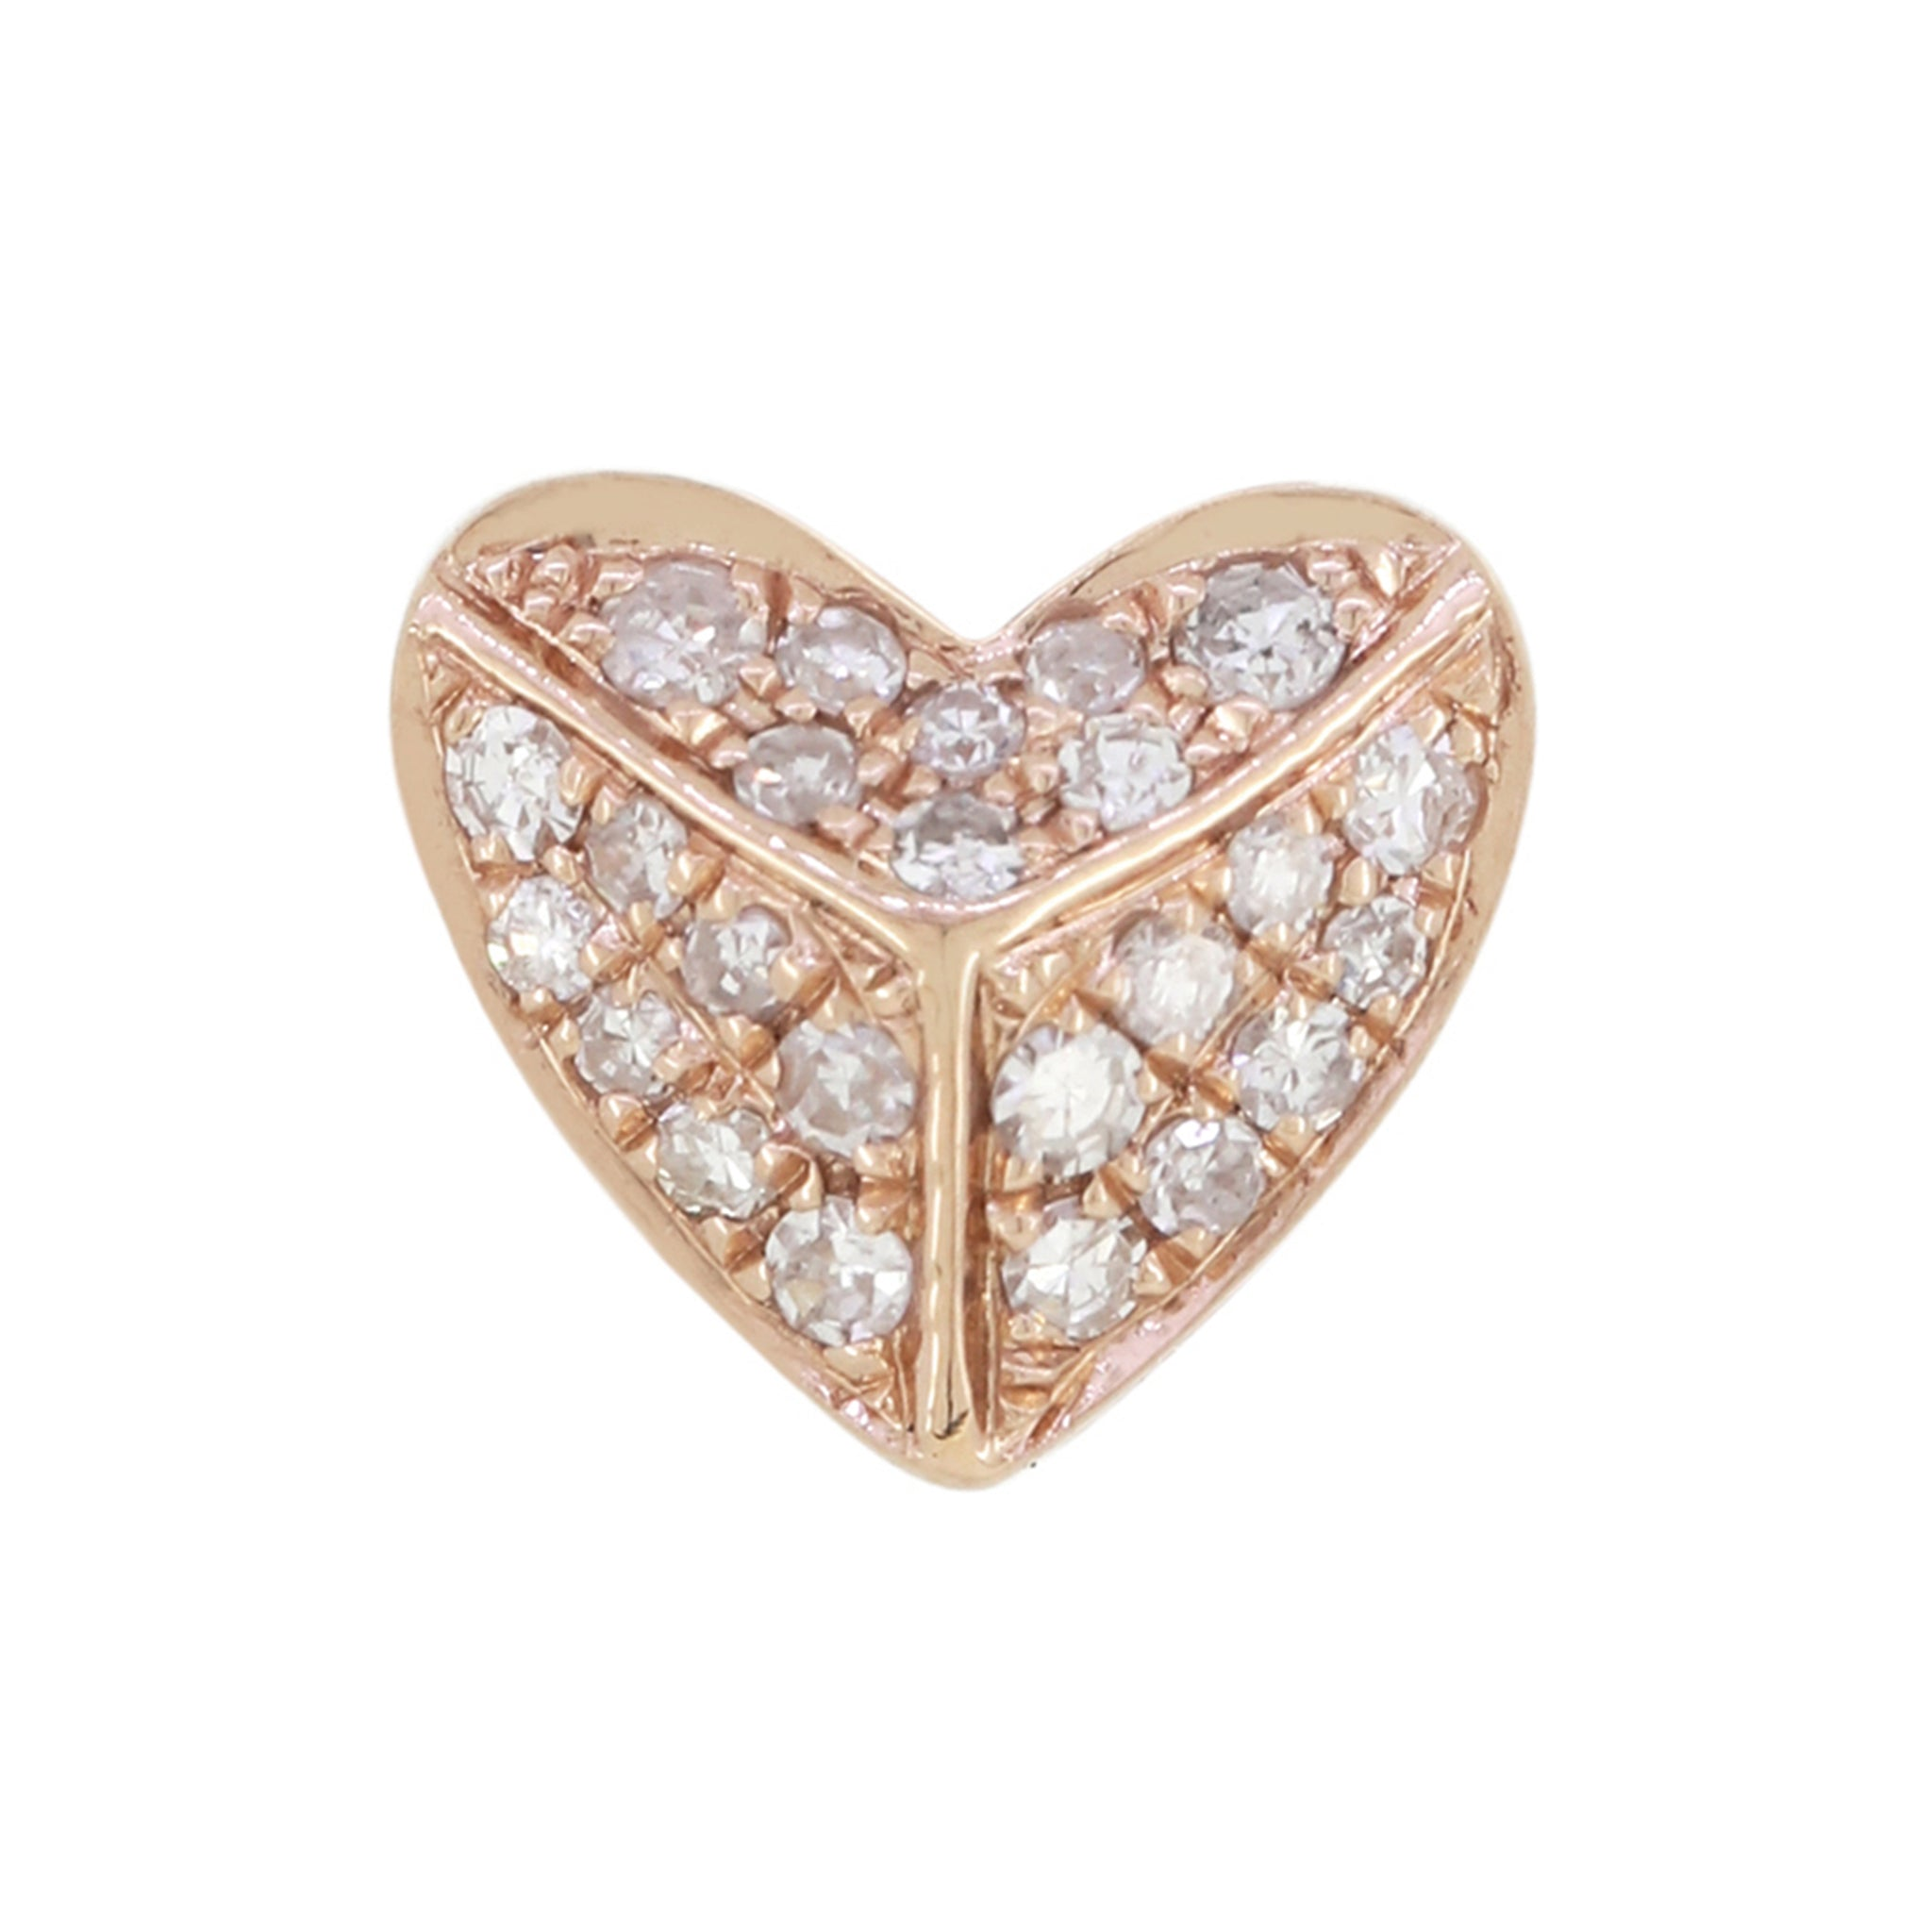 18K Rose Gold and Diamond Heart Earrings